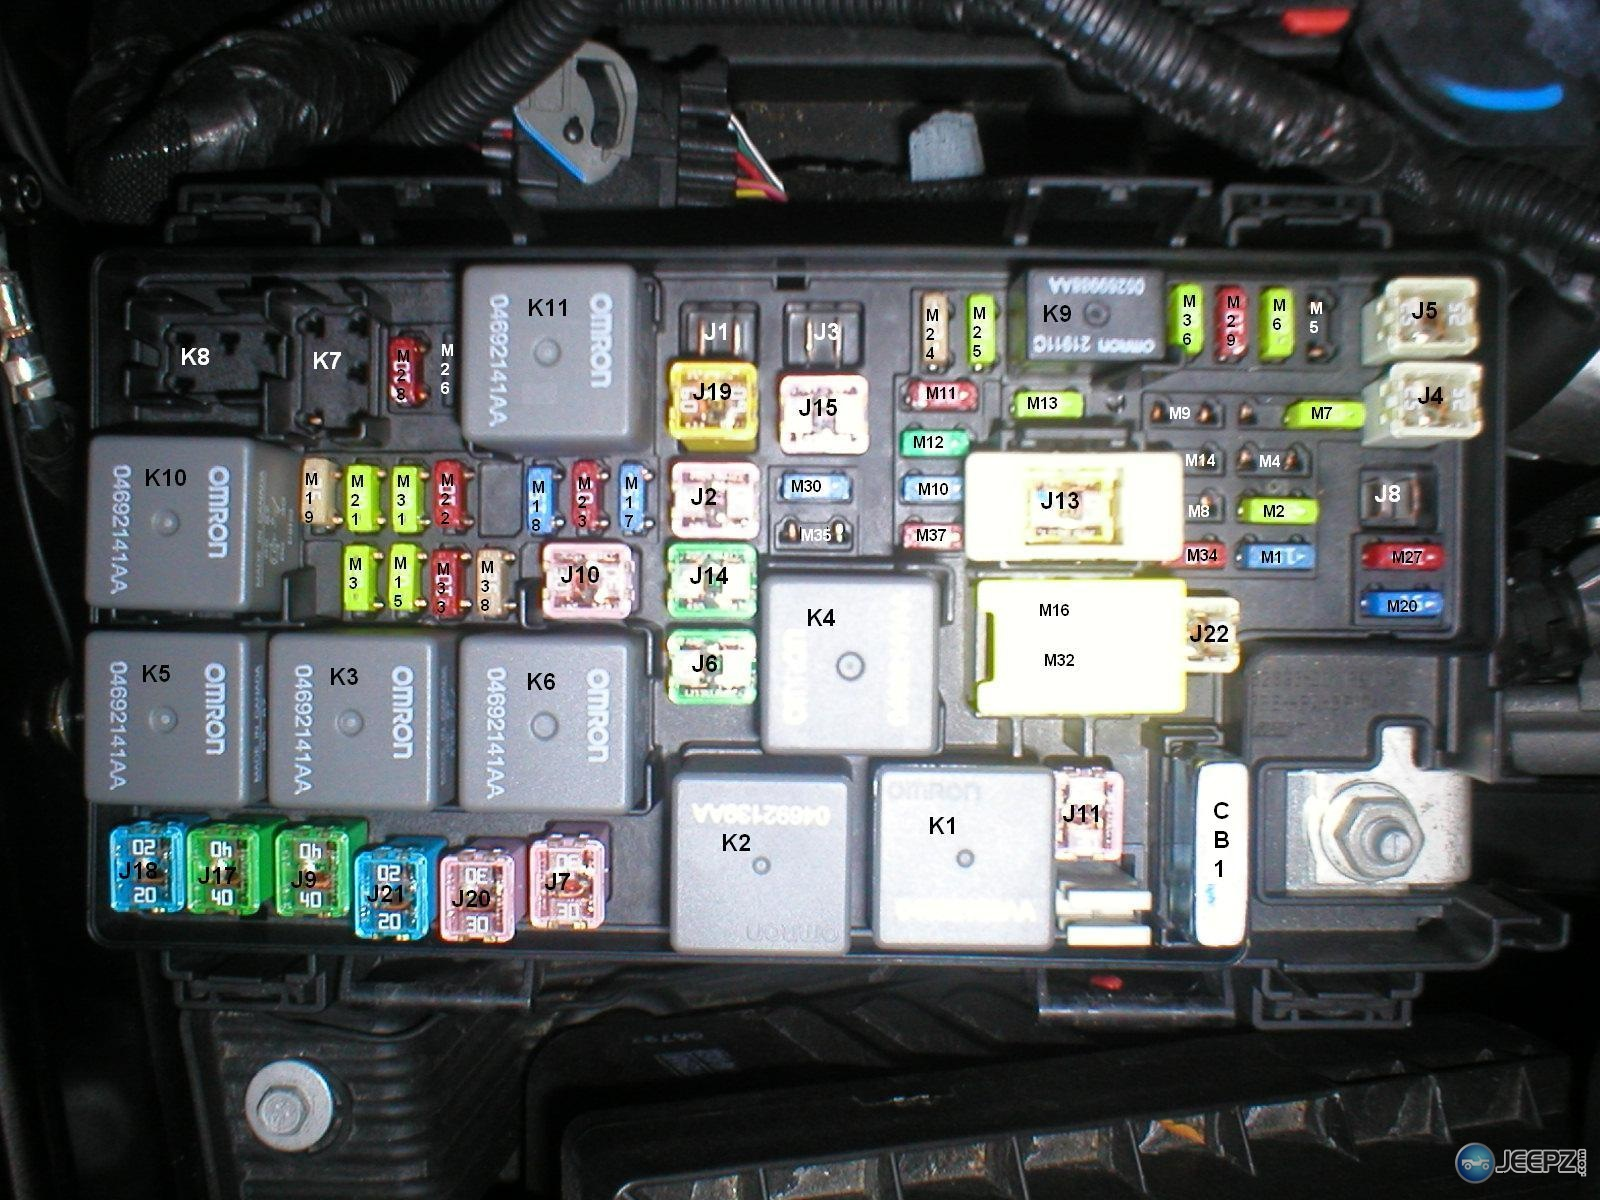 2016 04 01 archive as well Mini Cooper 2007 Present Fuse Box Diagram 431133 together with 3pim0 Blown Fuse Somewhere 1998 Jeep Wrangler also 47ws5 Jeep Ckerokee Country Need Fuse Panel Diagram 1996 as well Jeep Wrangler Fuse Box. on jeep commander 2007 fuse box diagram